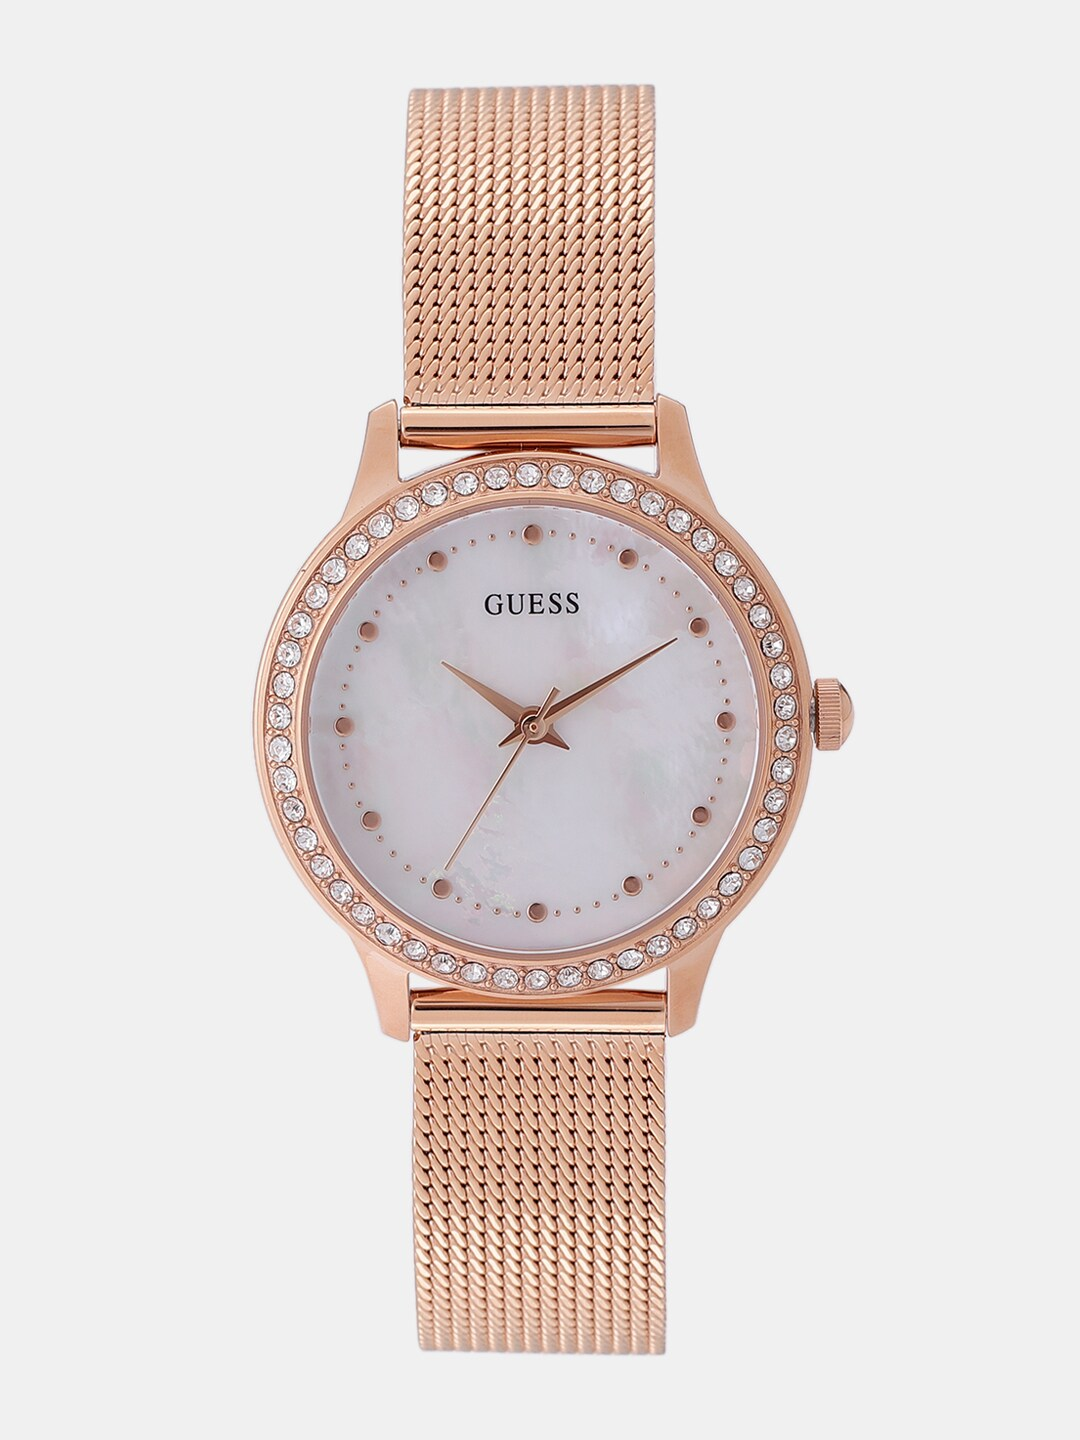 641cd8a7 Women Watches Bracelet - Buy Women Watches Bracelet online in India